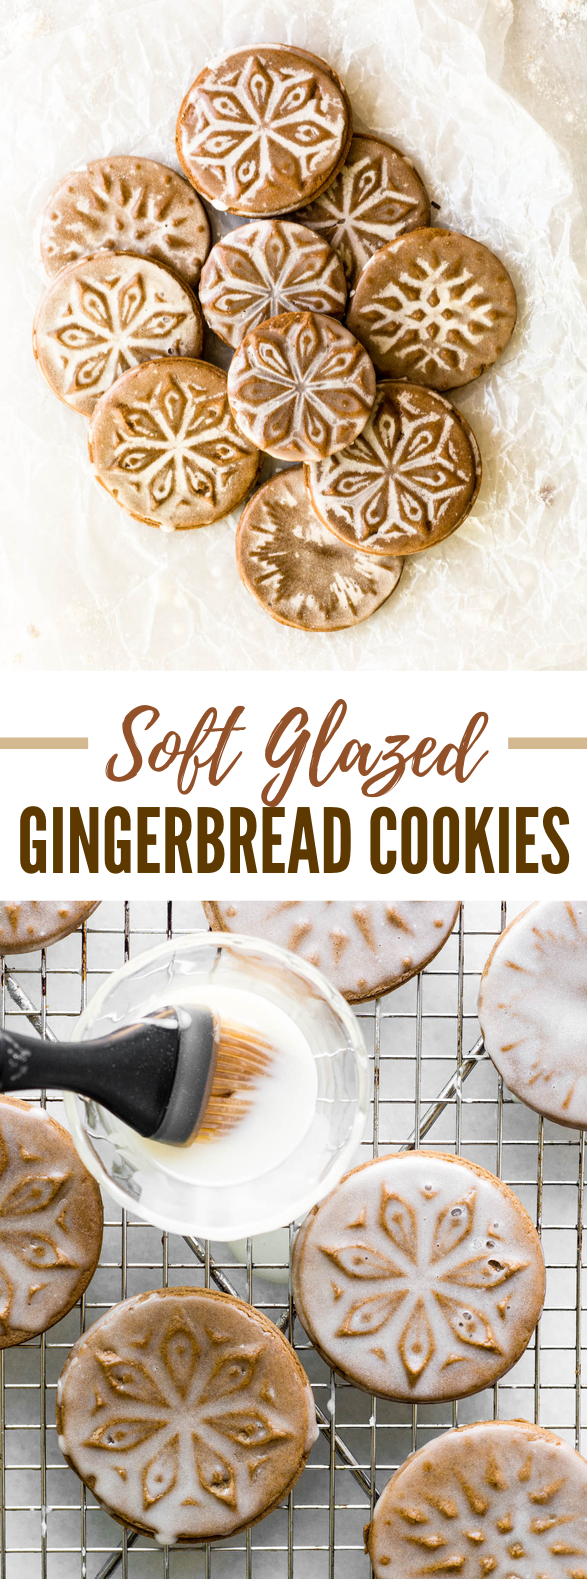 SOFT GLAZED GINGERBREAD COOKIES #desserts #treats